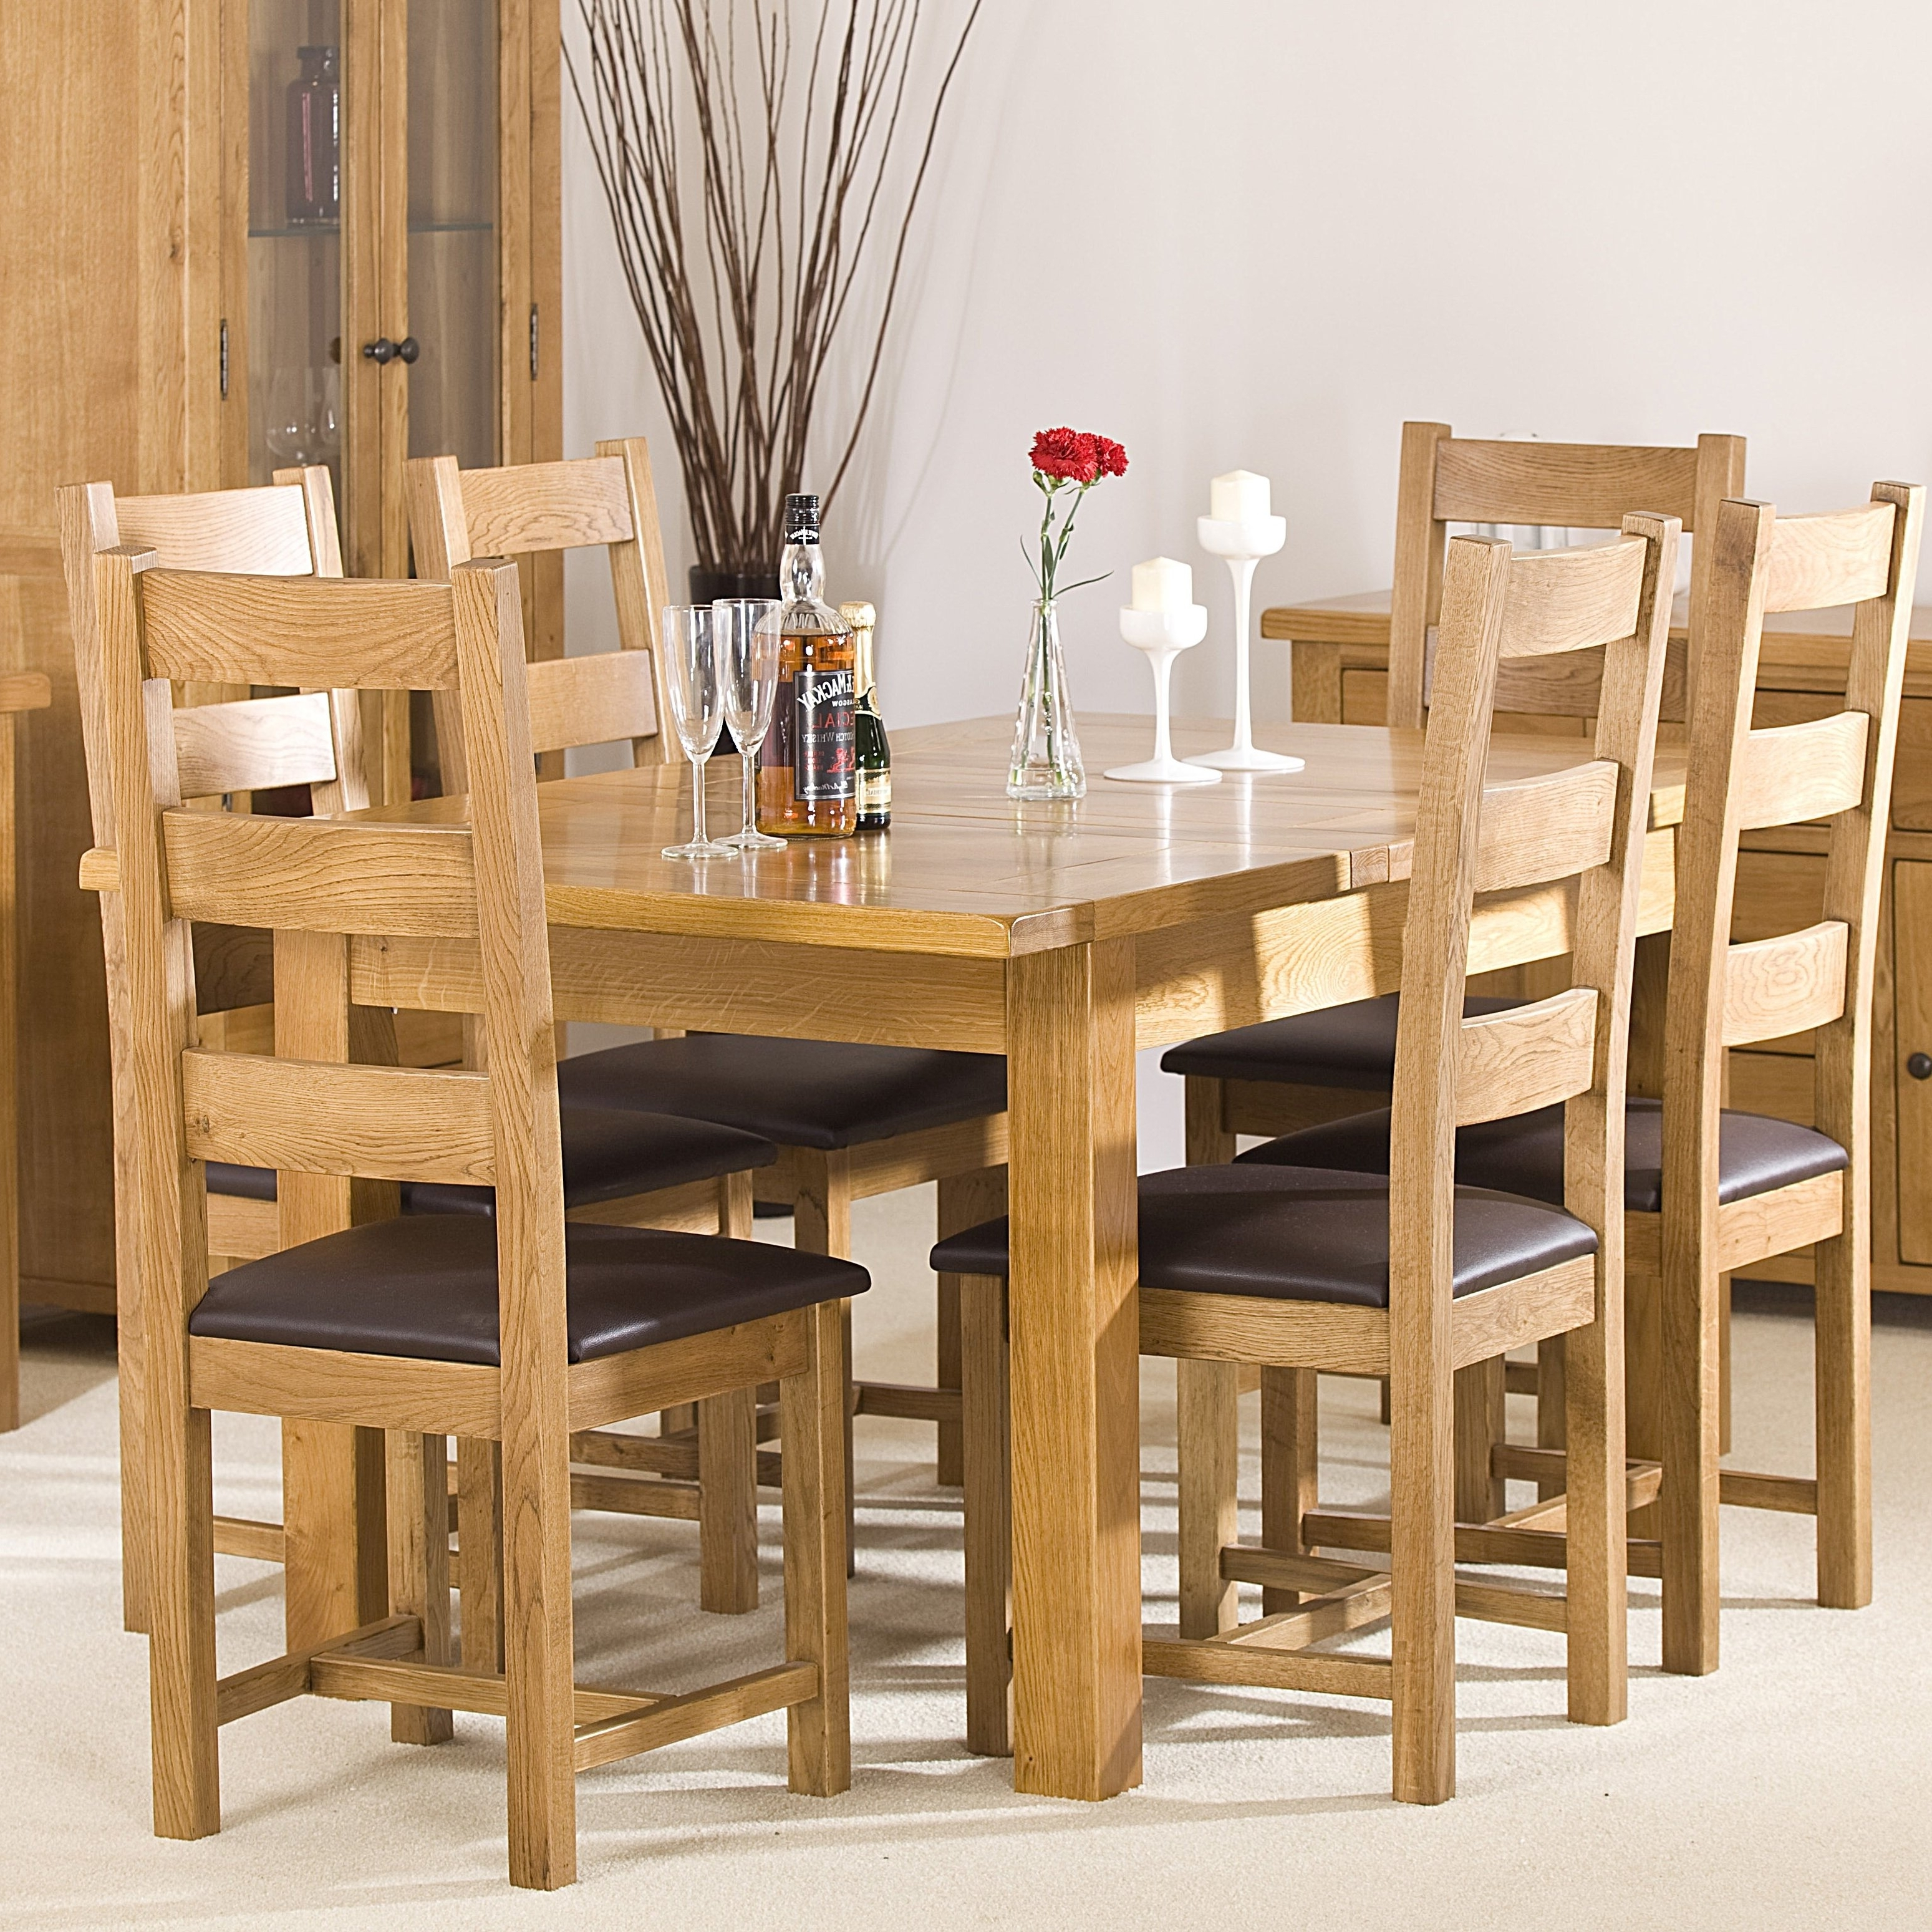 Well-known Extendable Dining Tables With 6 Chairs inside Homestead Living Extendable Dining Table And 6 Chairs